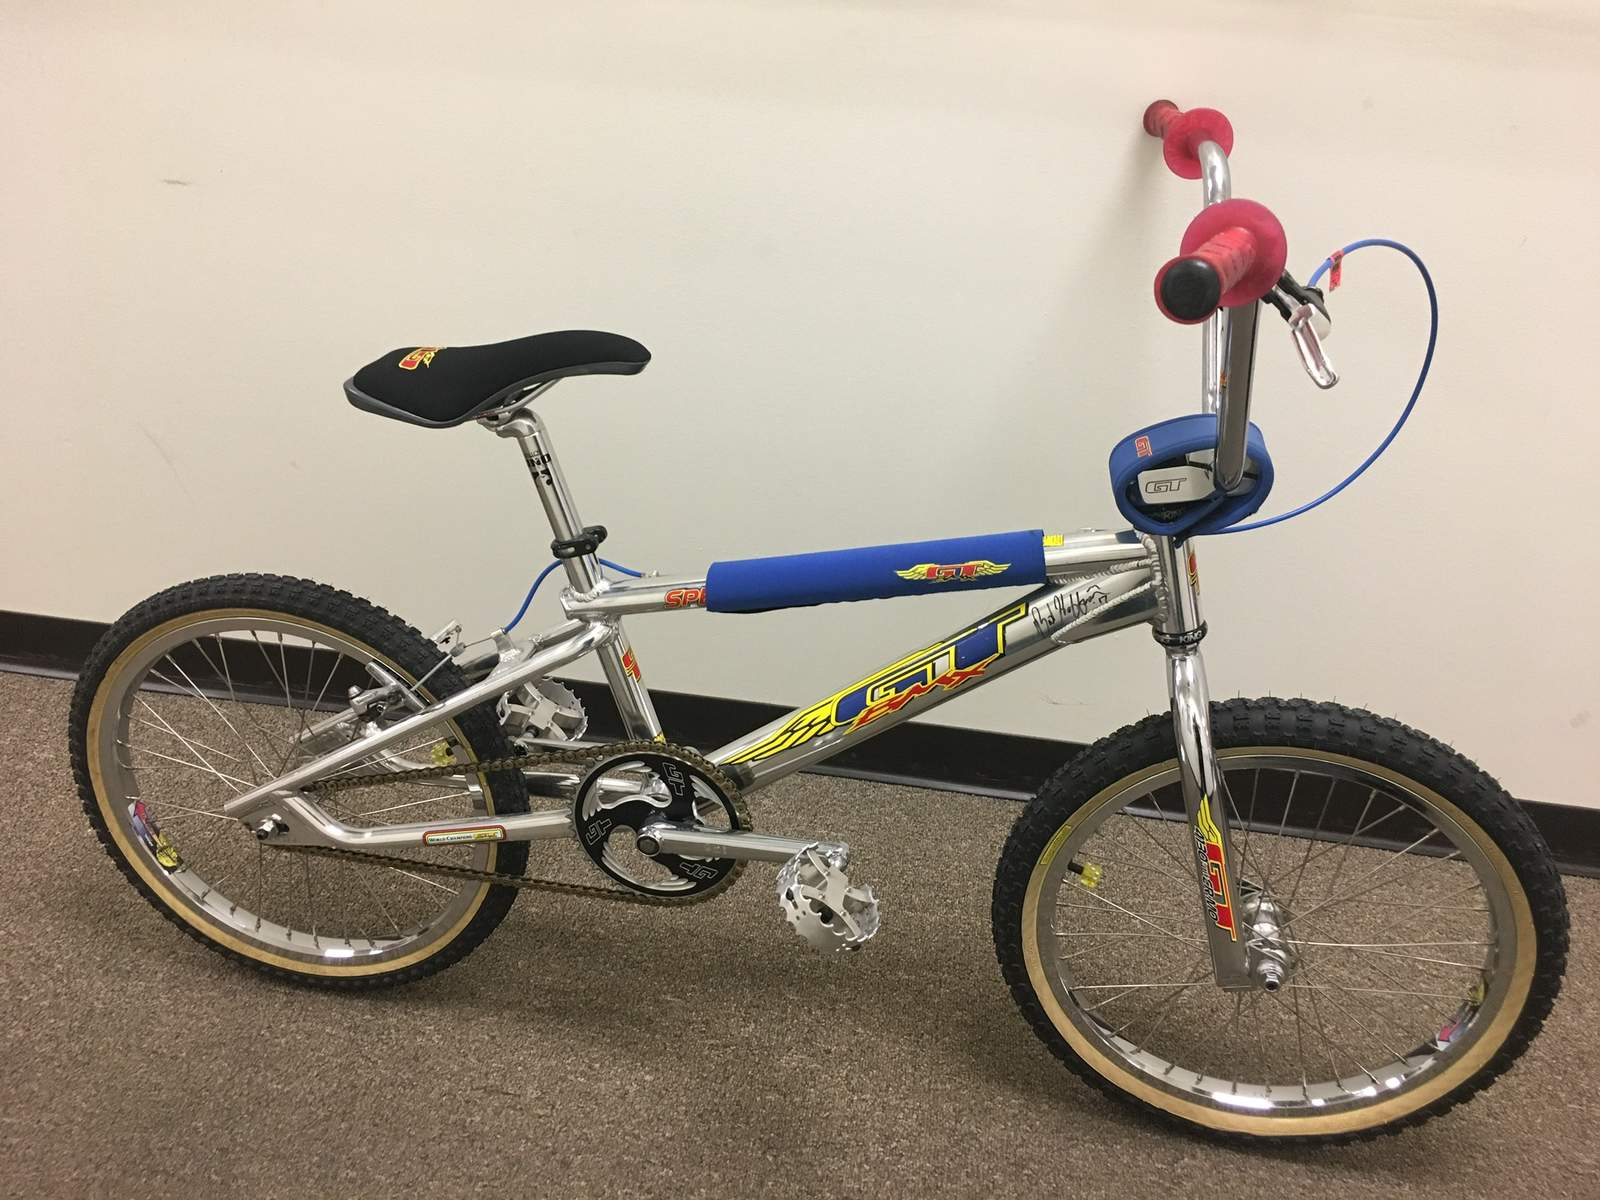 http://uploads.bmxmuseum.com/user-images/234558/e8d5dd0c-41a2-4f60-862e-5b113c88e3005c1509be5b.jpeg